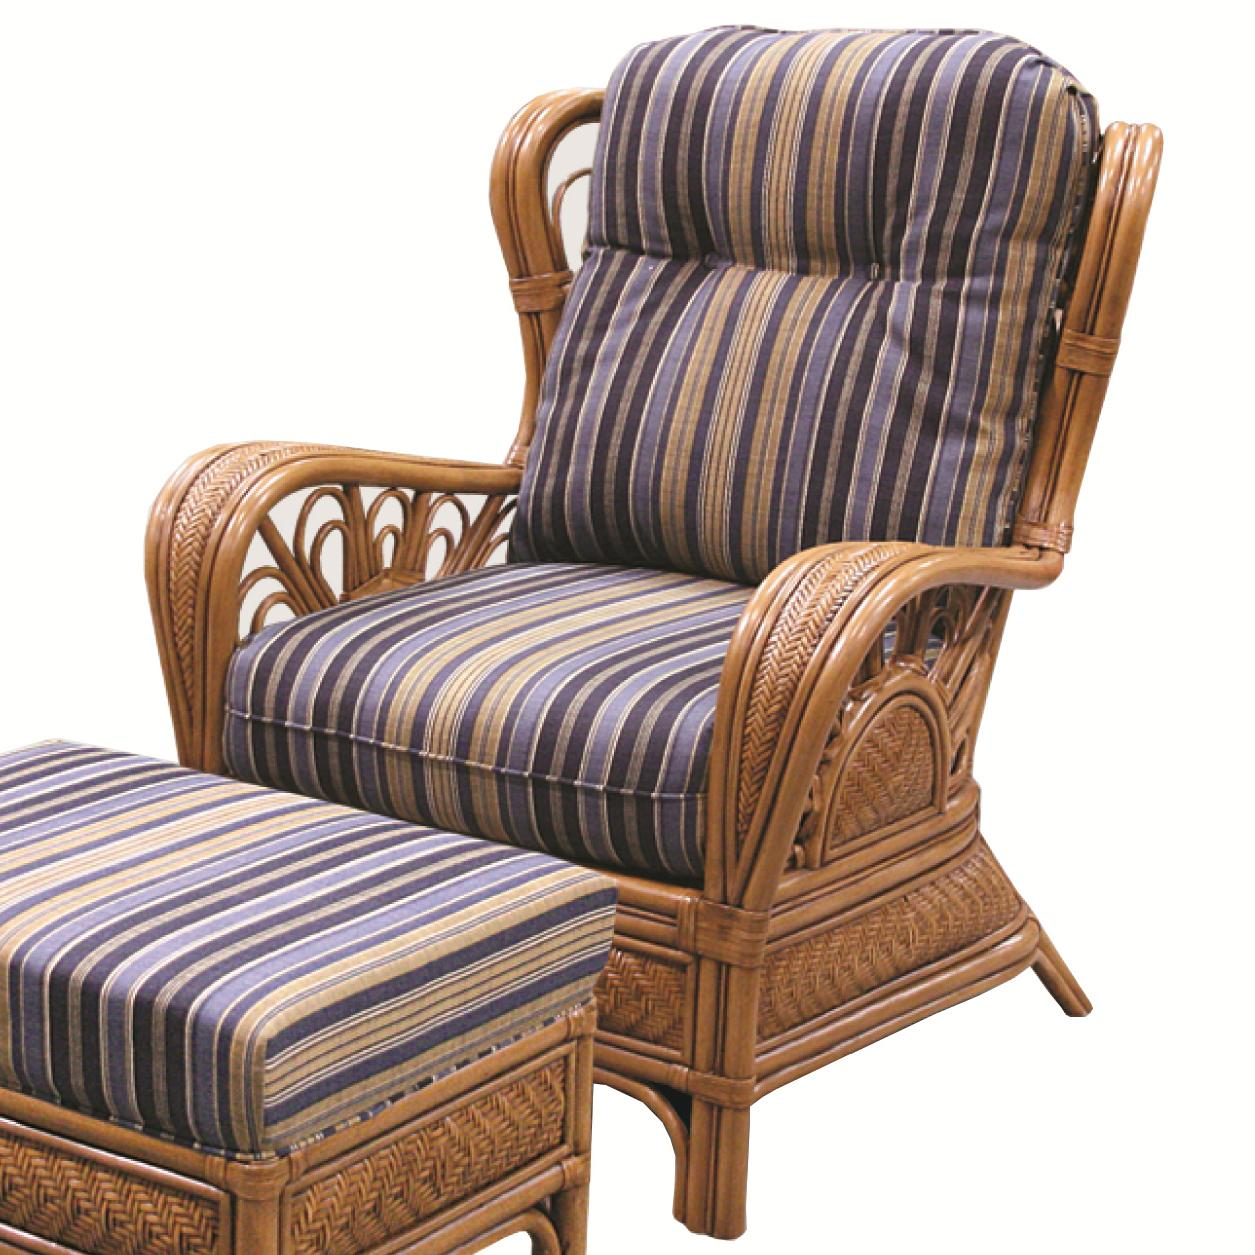 321 Collection Exposed Rattan Chair by Capris Furniture at Esprit Decor Home Furnishings